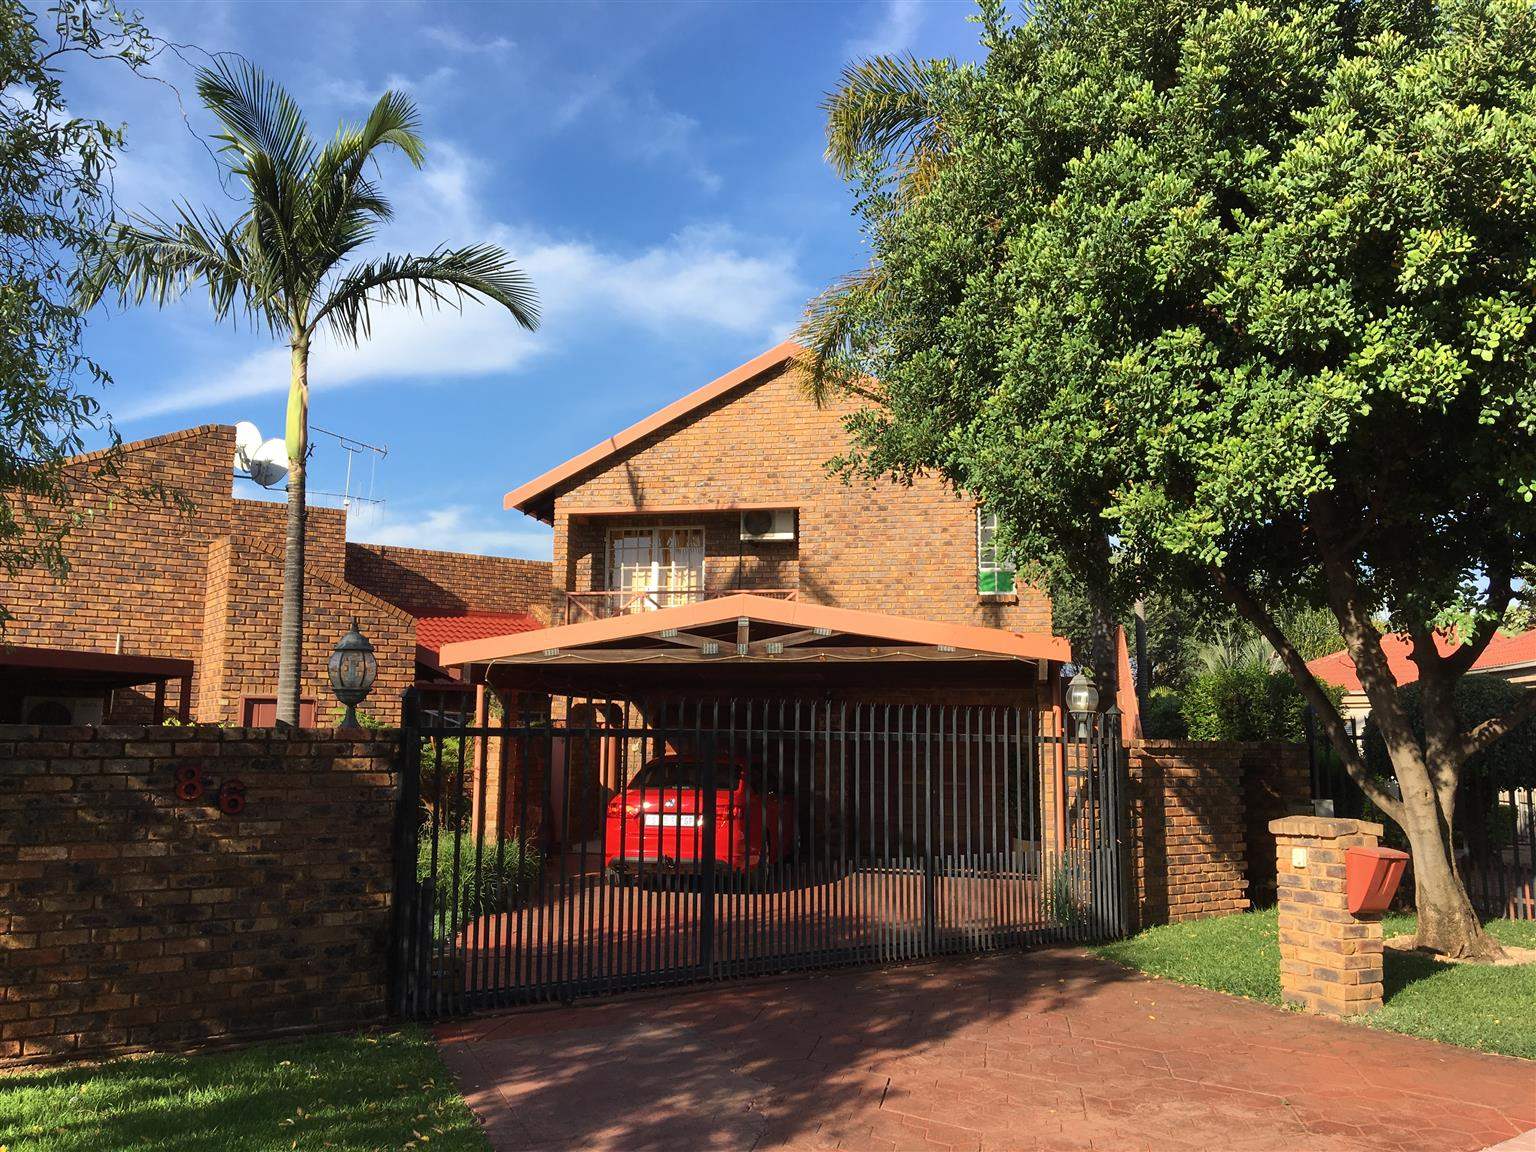 1 Bedroomed Flat in Montana Park - Water & Electricity and Full DSTV included - R5000.00 pm